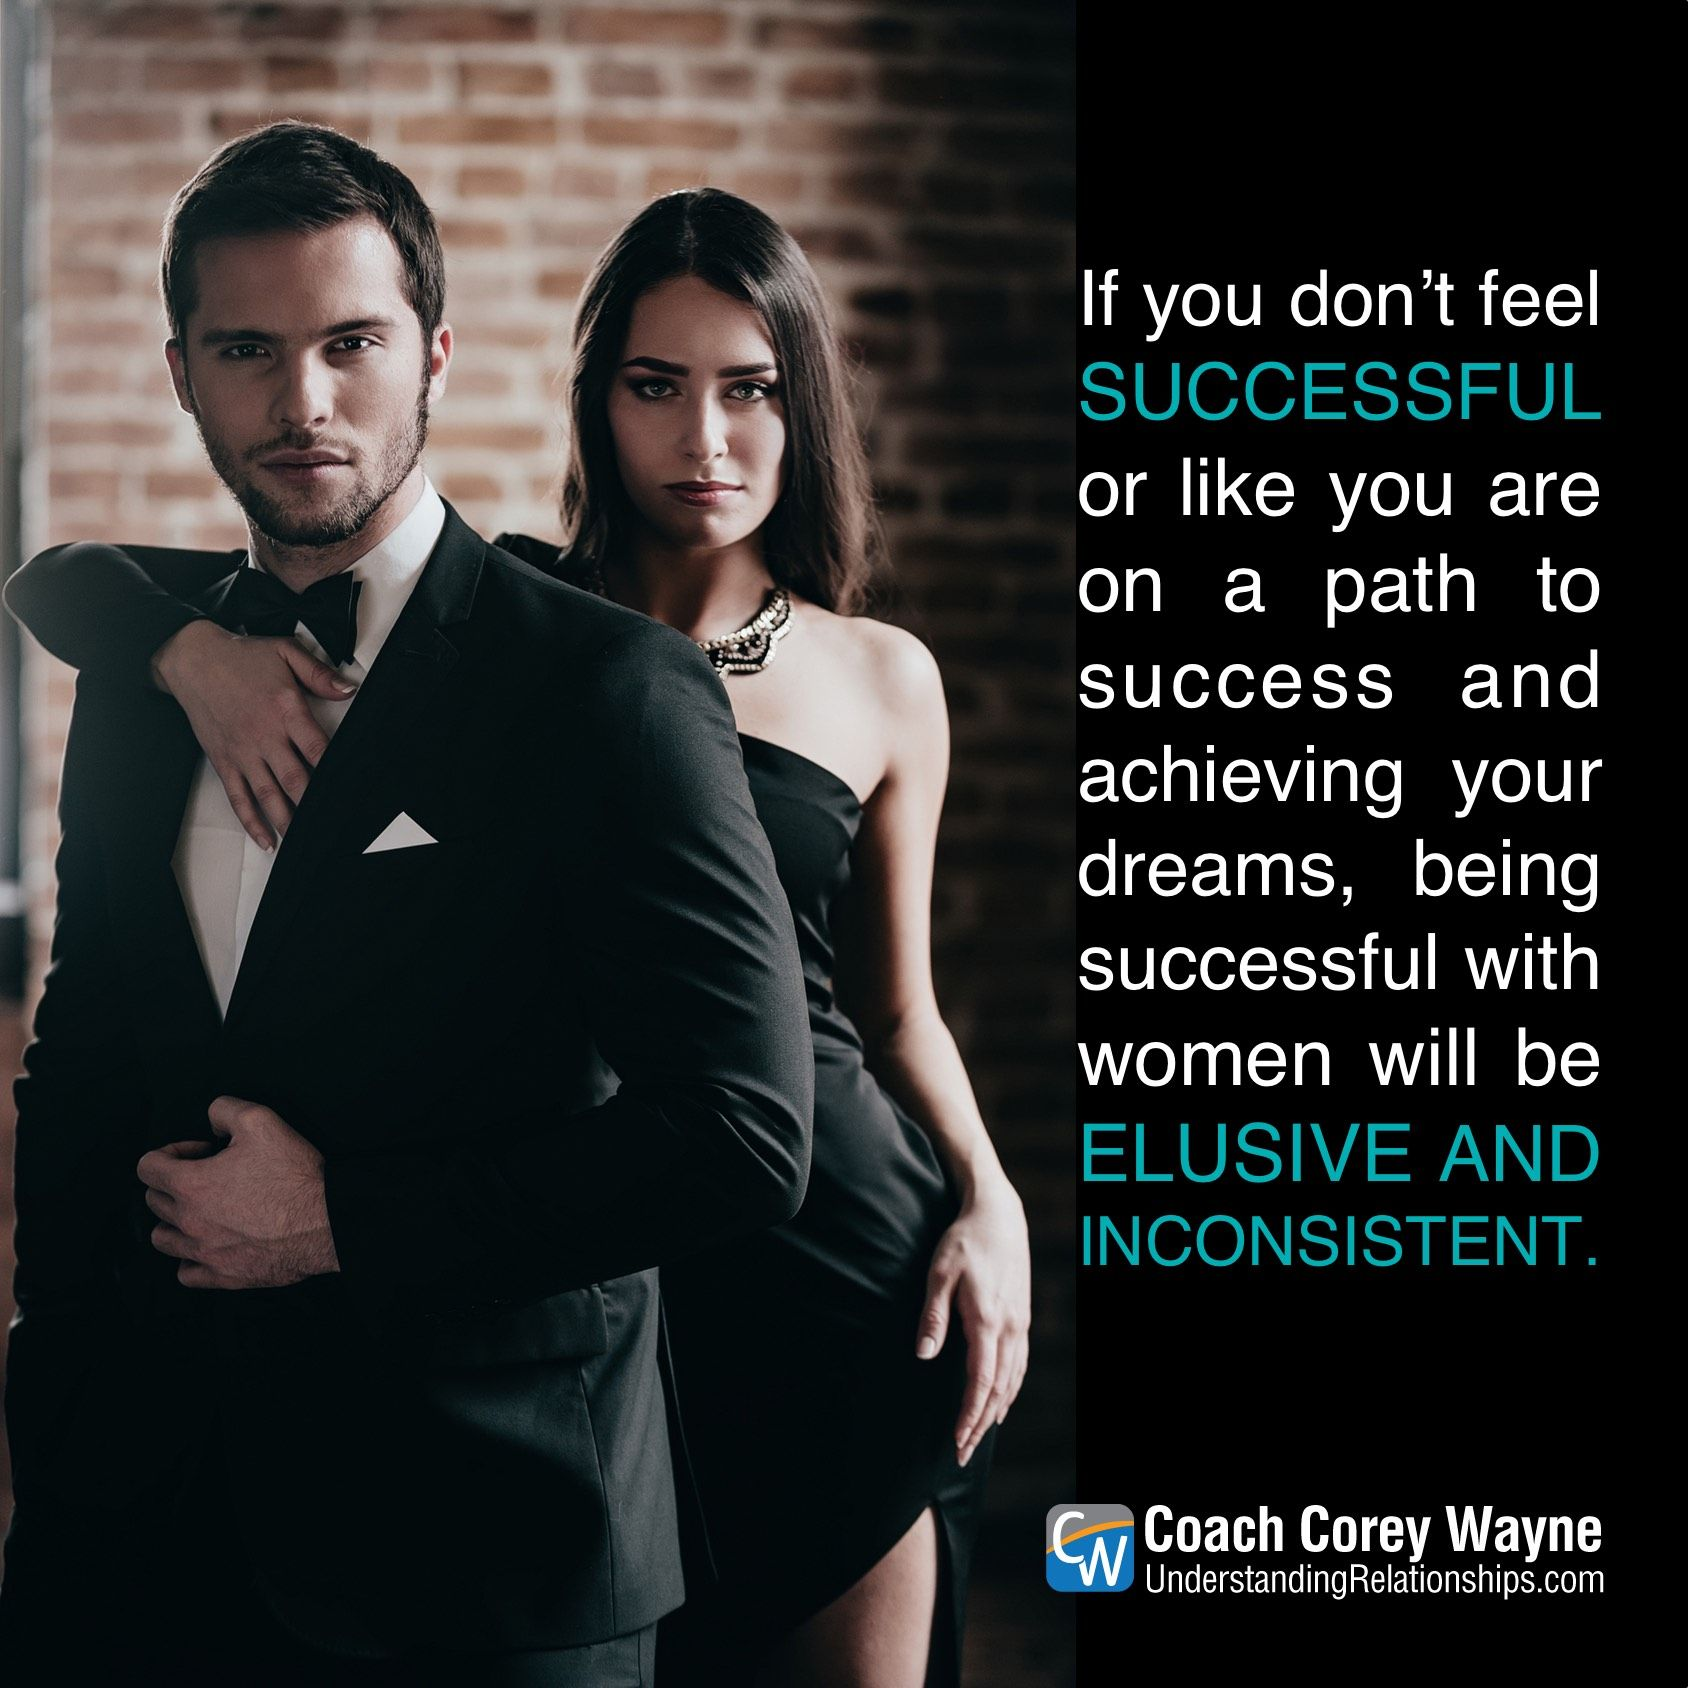 Being successful with women